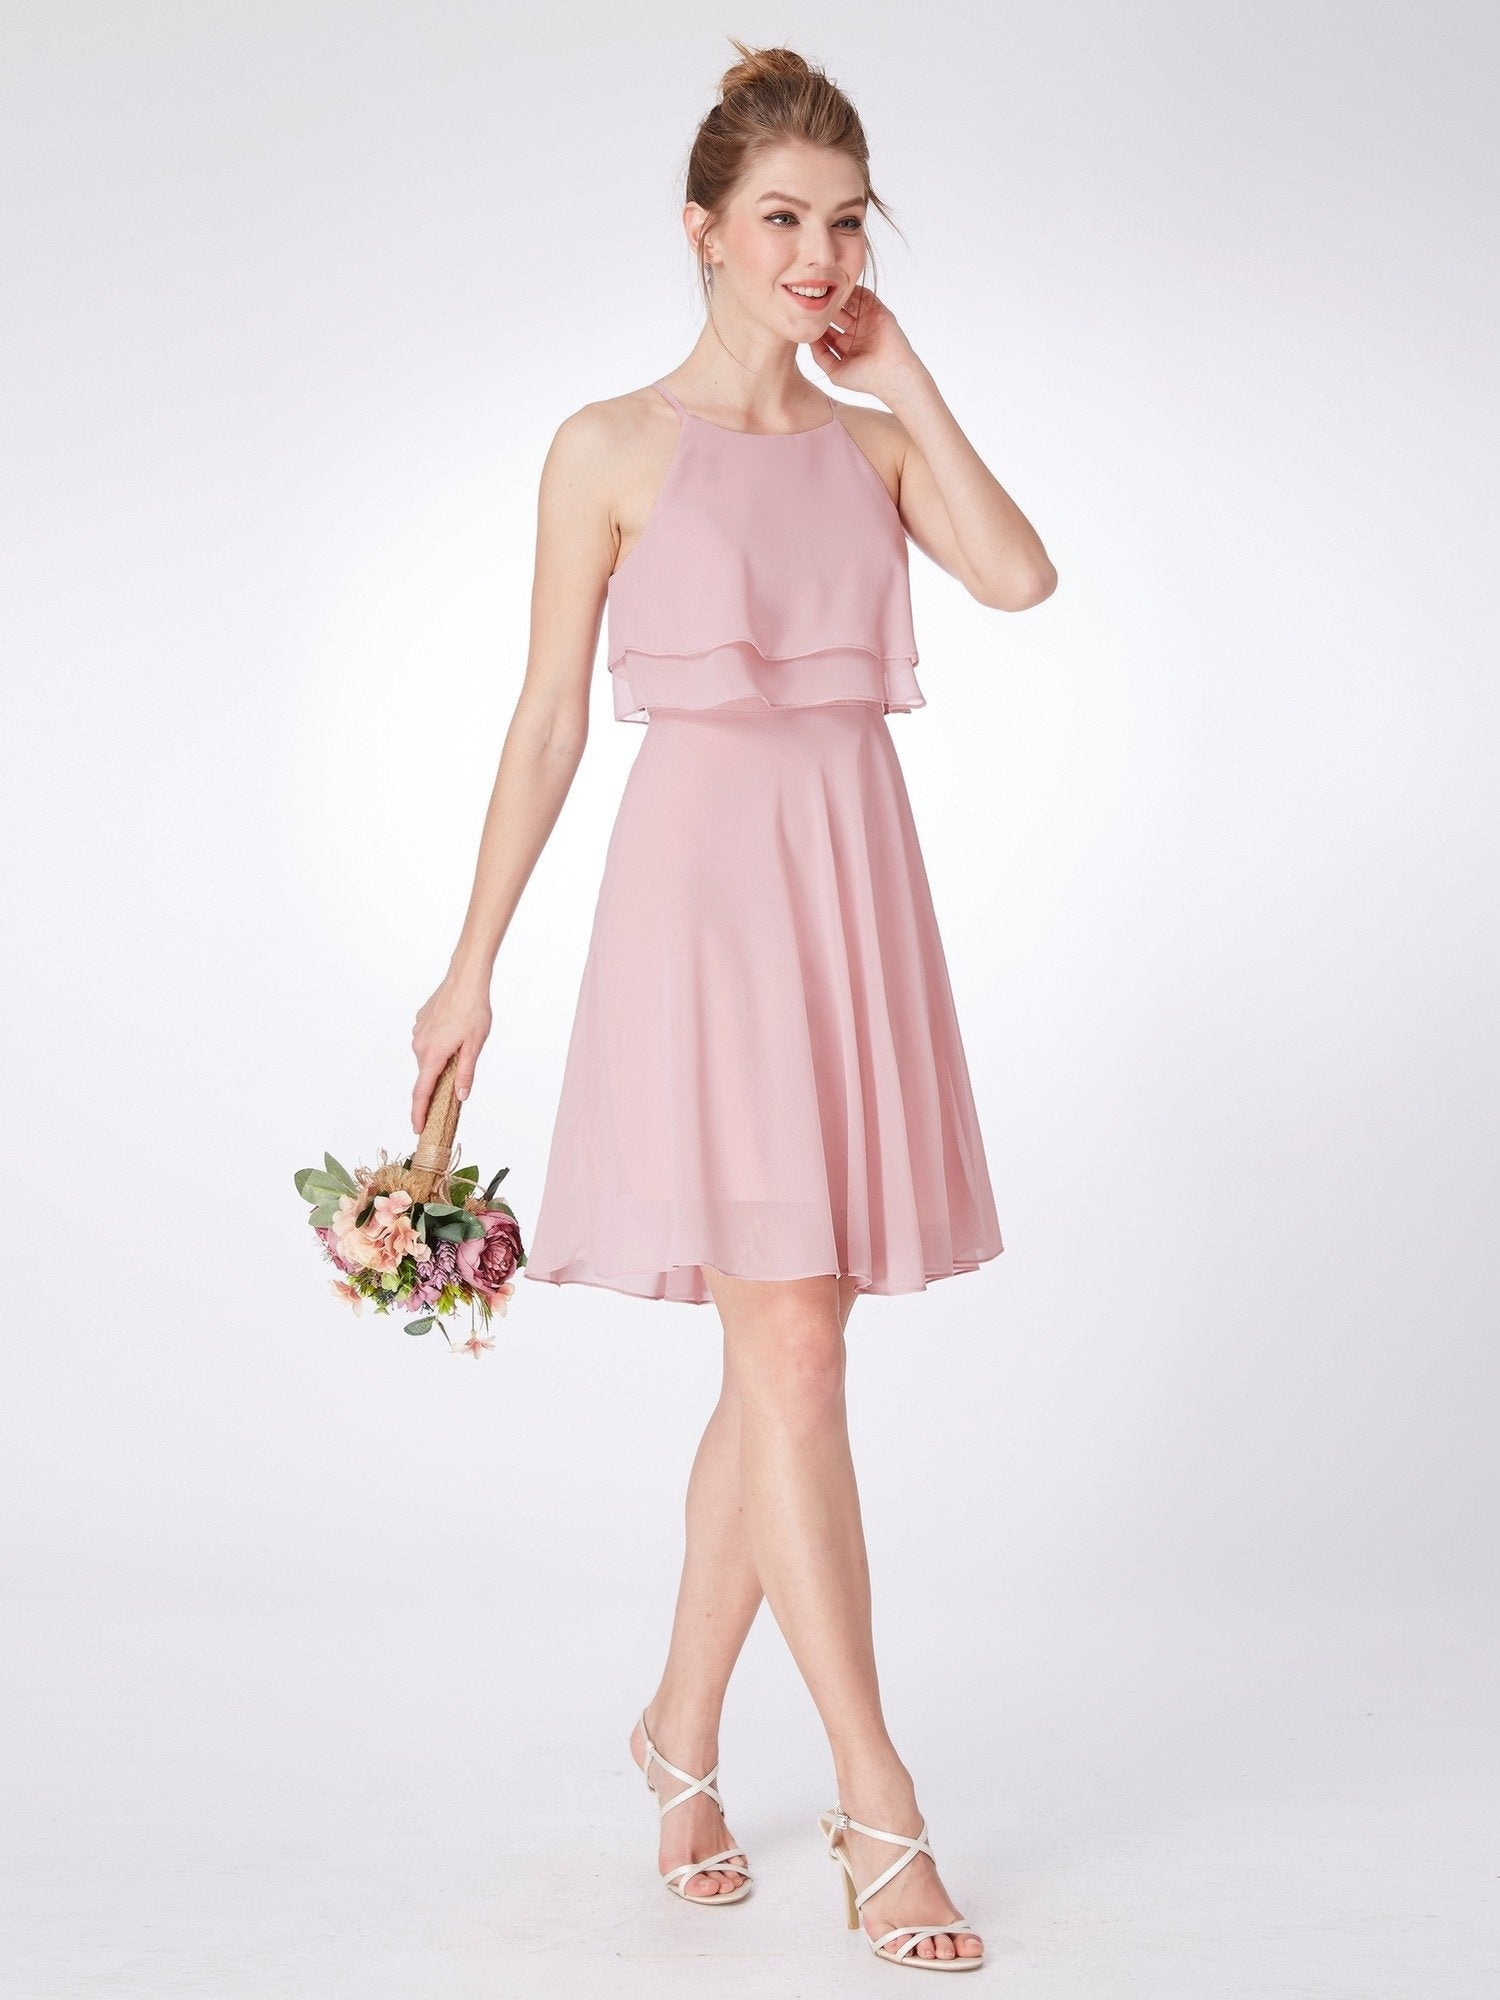 pink bridesmaid dress 4